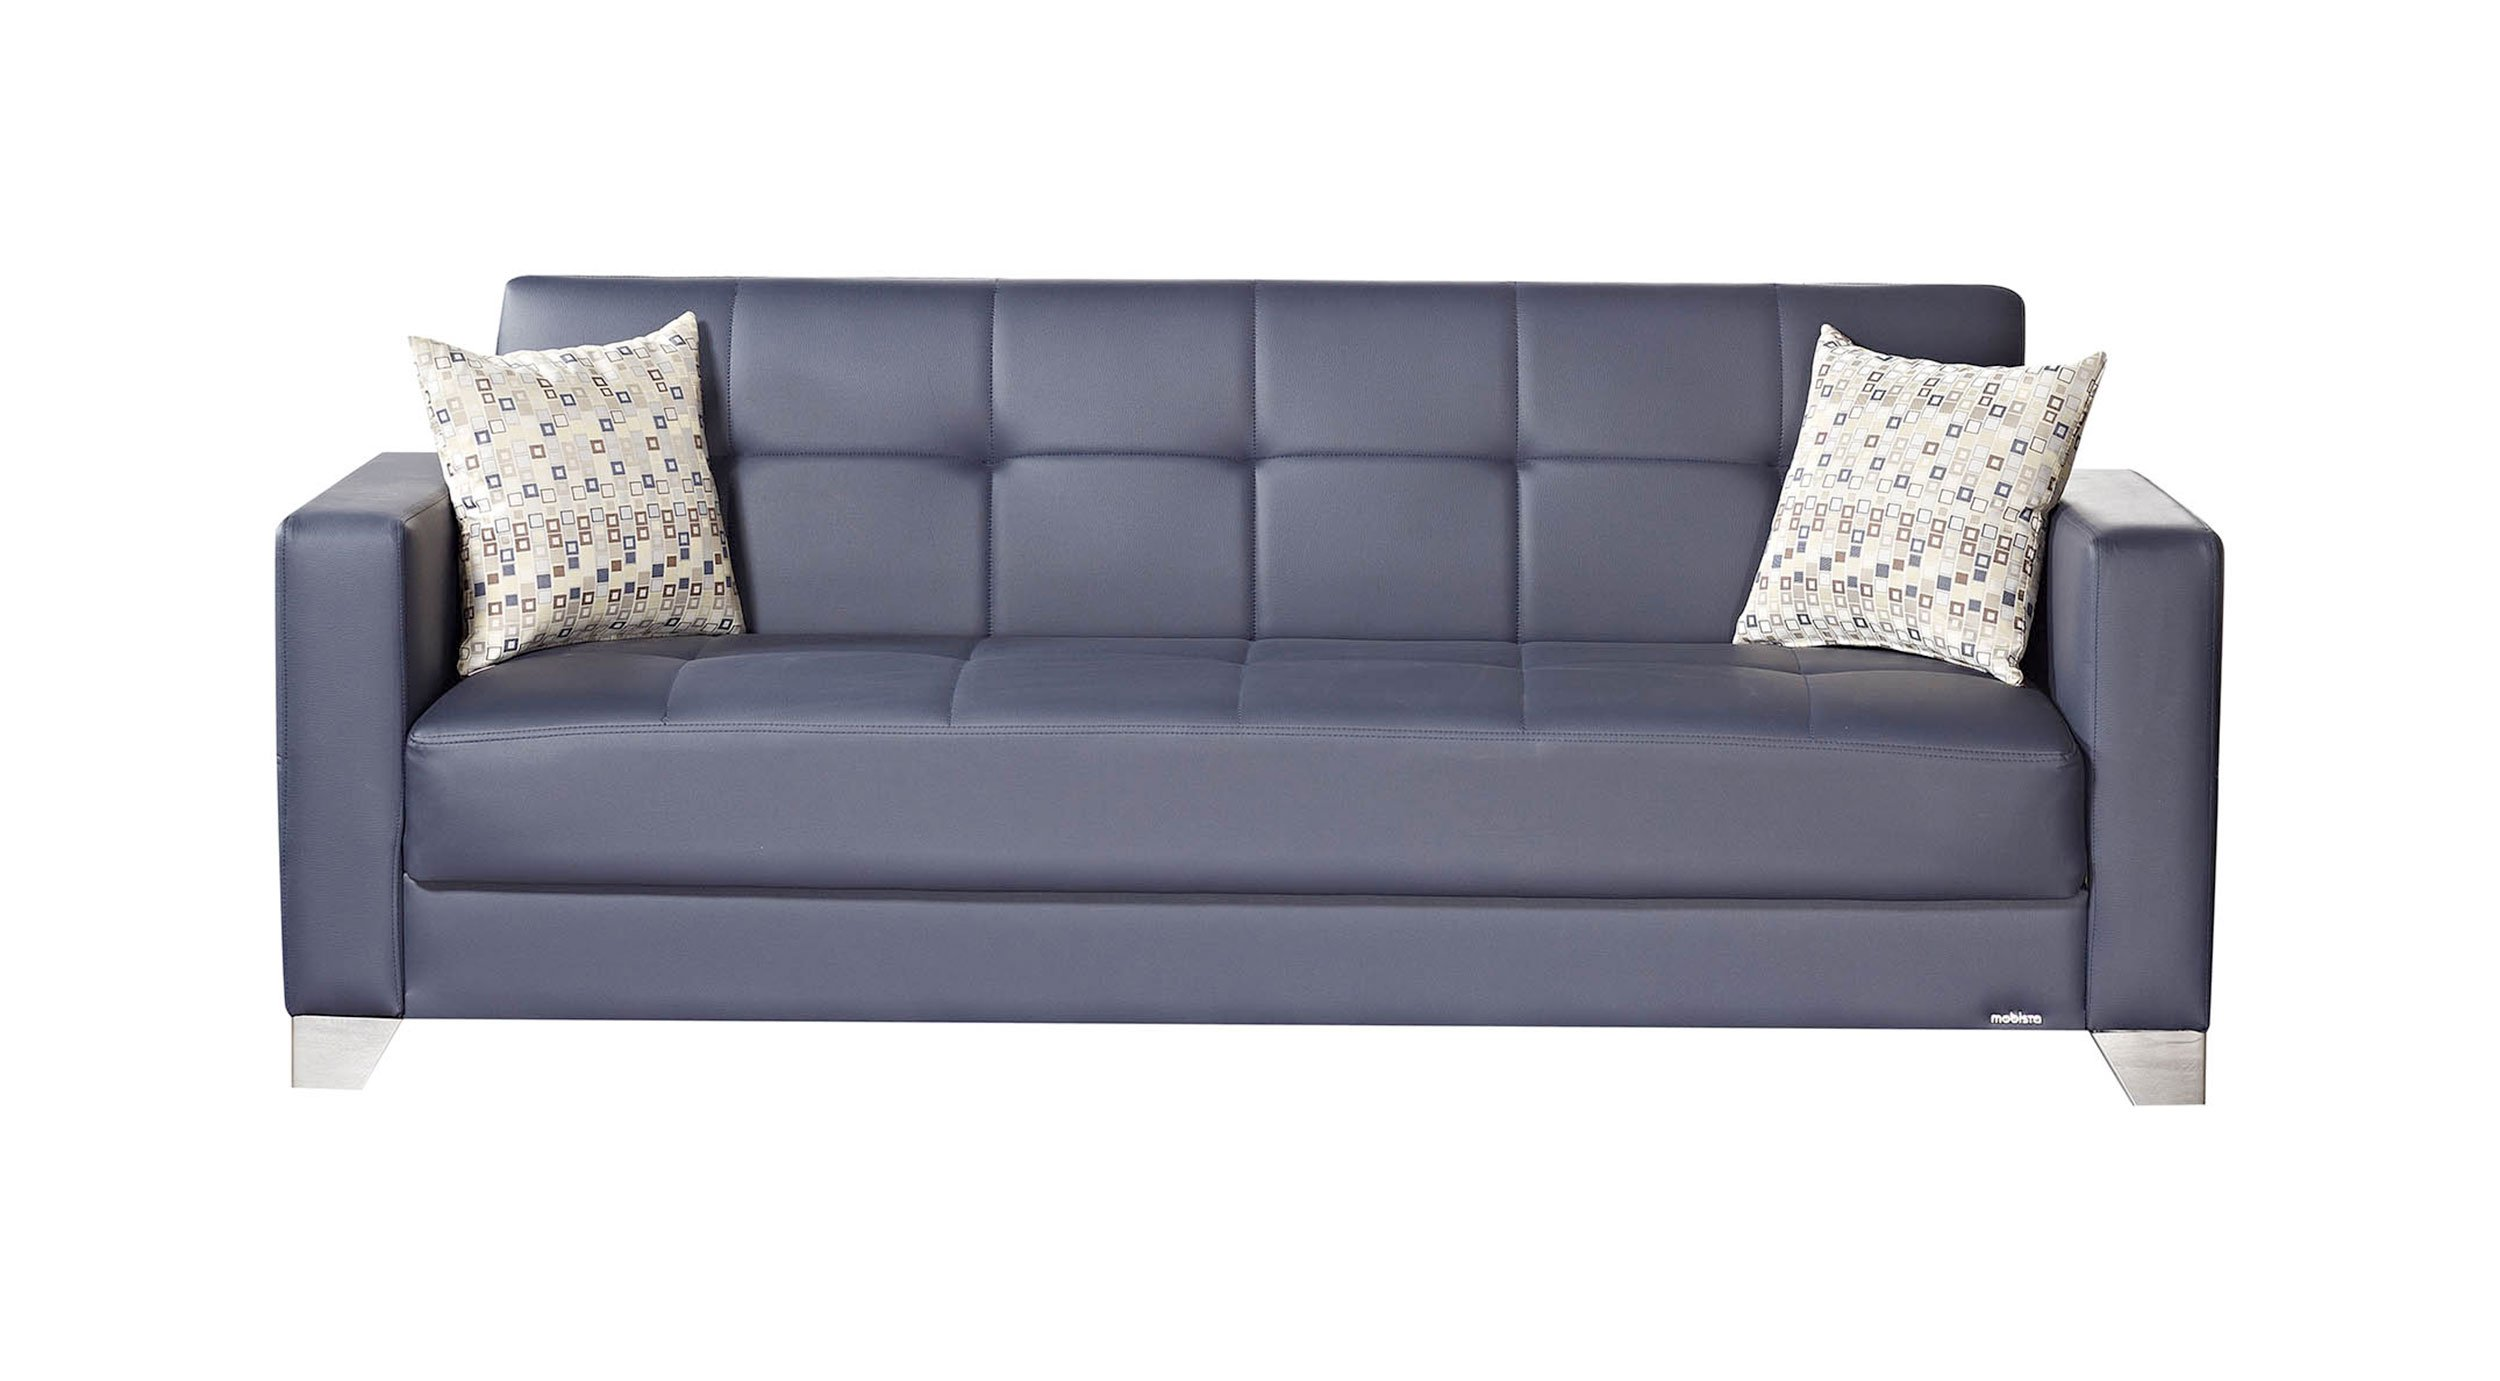 viva italia prestige navy blue leatherette sofa bed by mobista. Black Bedroom Furniture Sets. Home Design Ideas